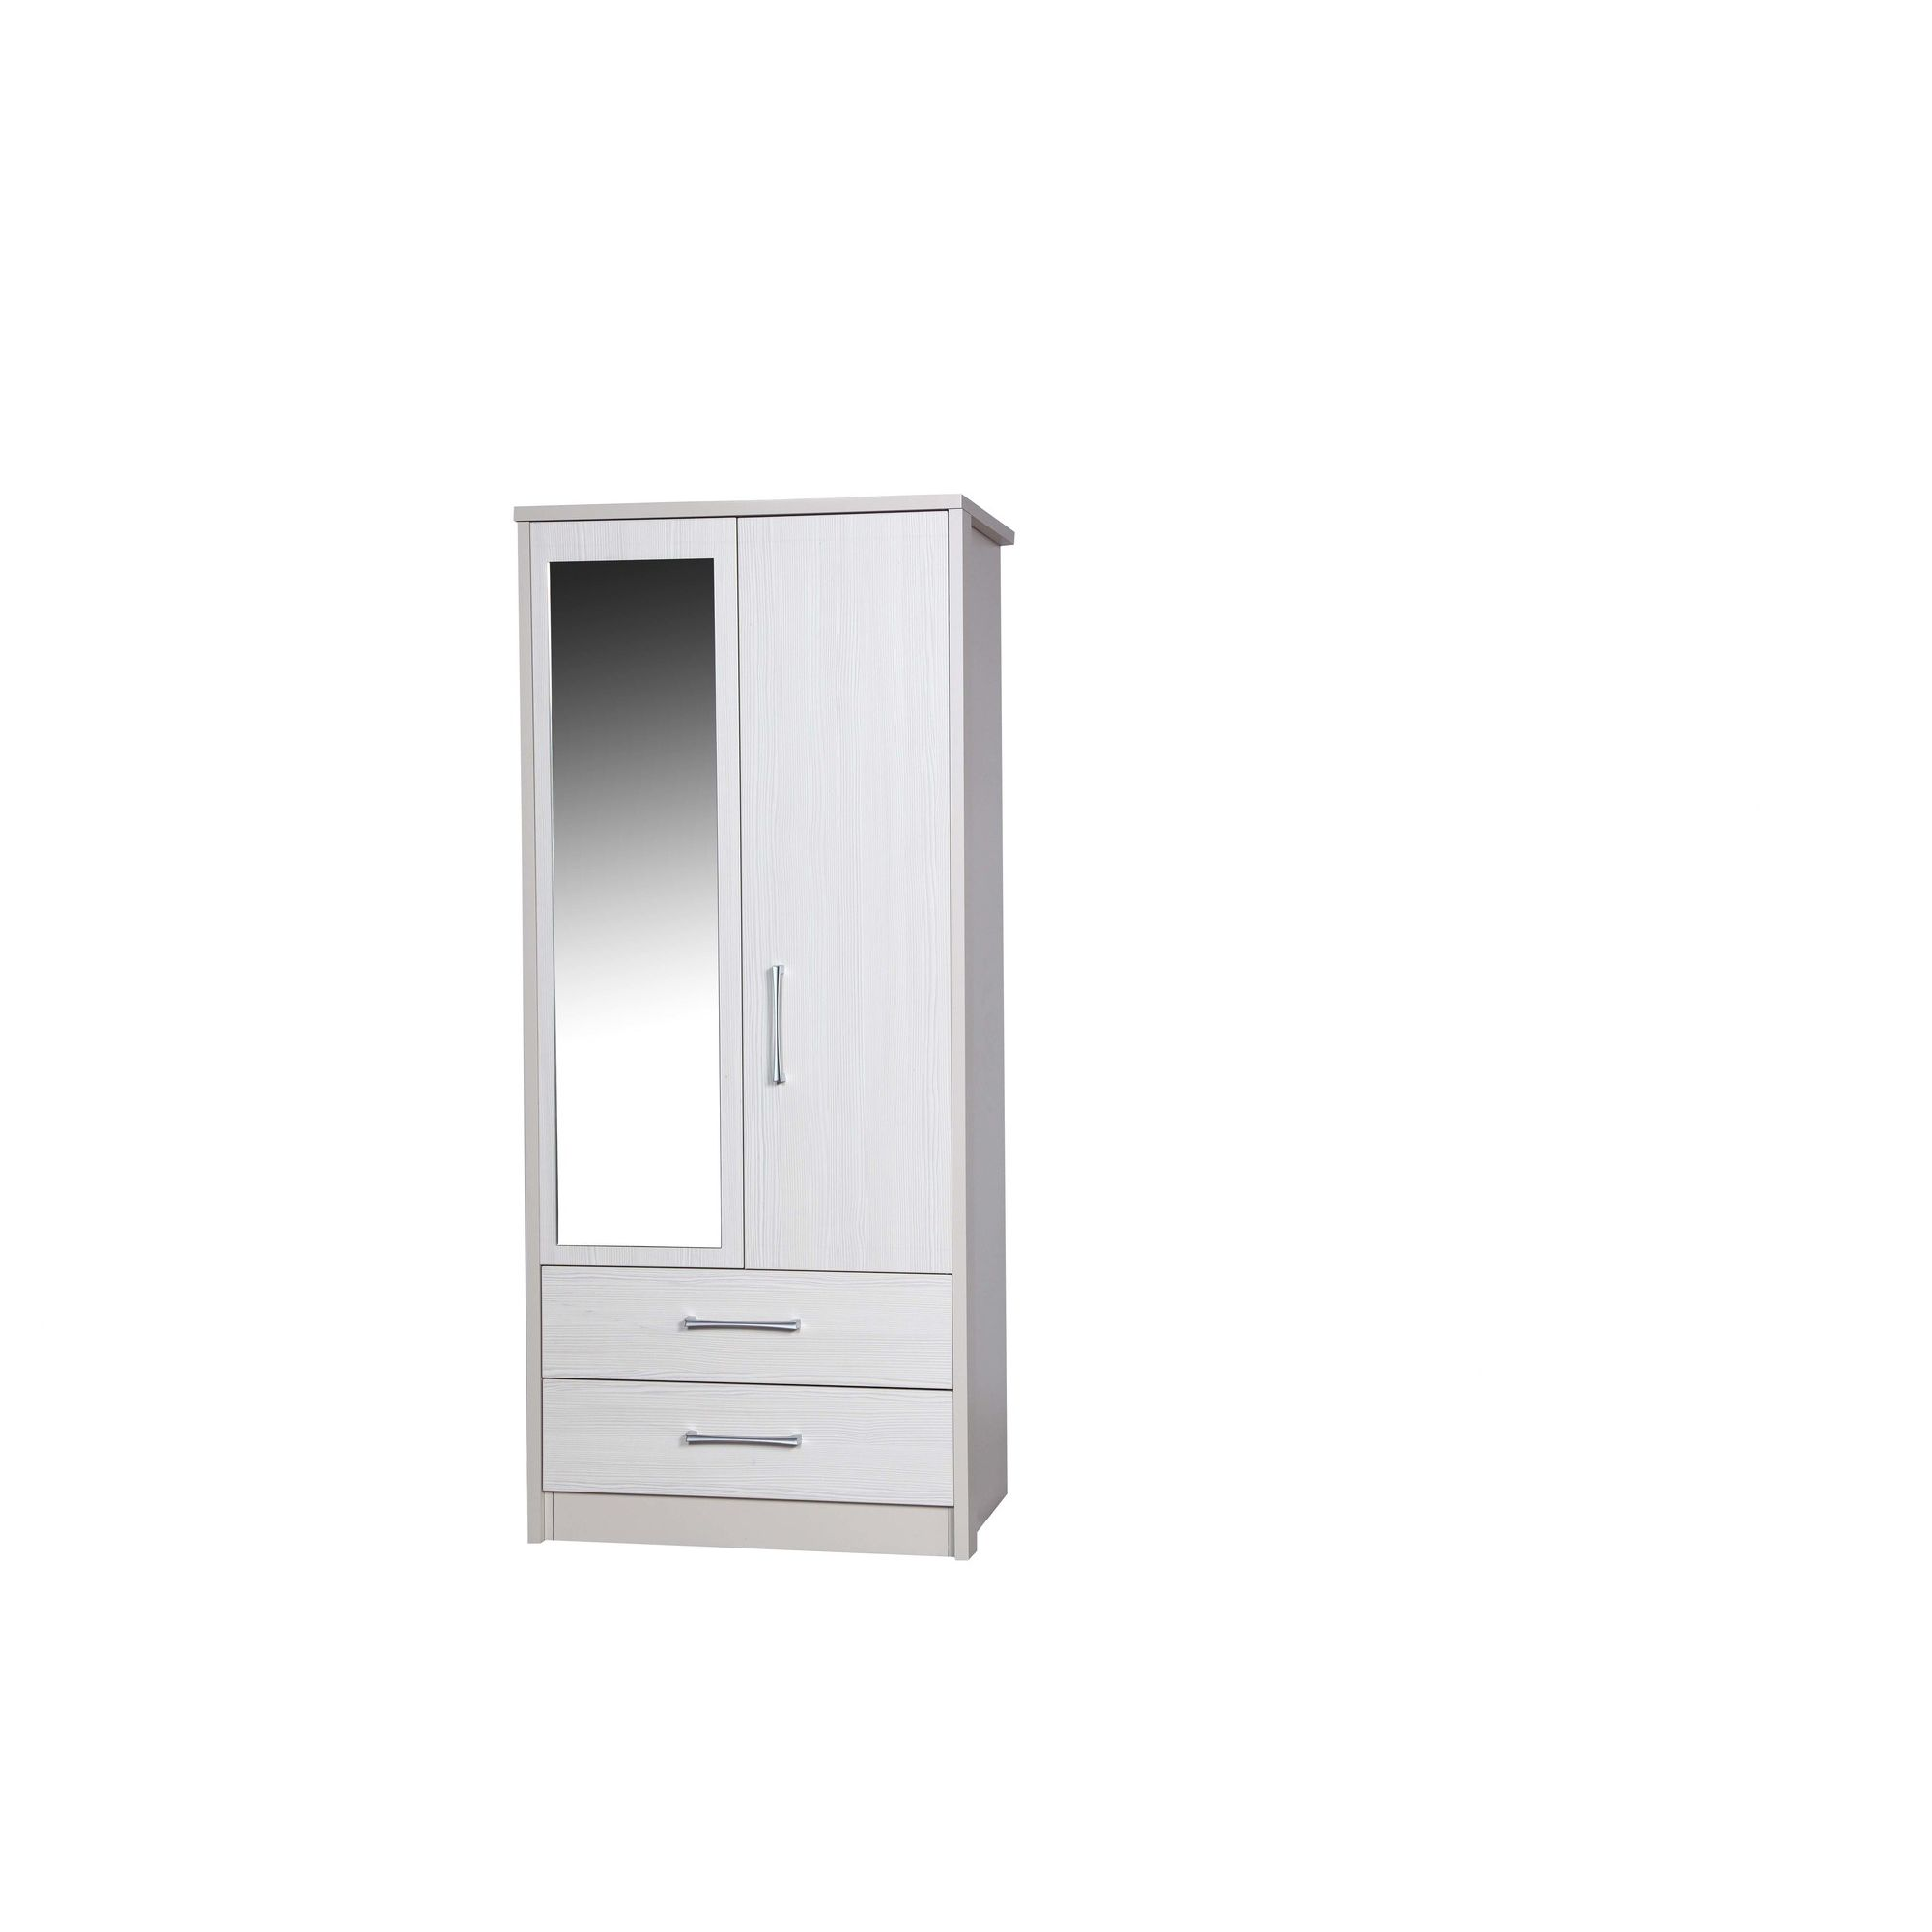 Alto Furniture Avola 2 Drawer Combi Wardrobe with Mirror - Cream Carcass With White Avola at Tescos Direct